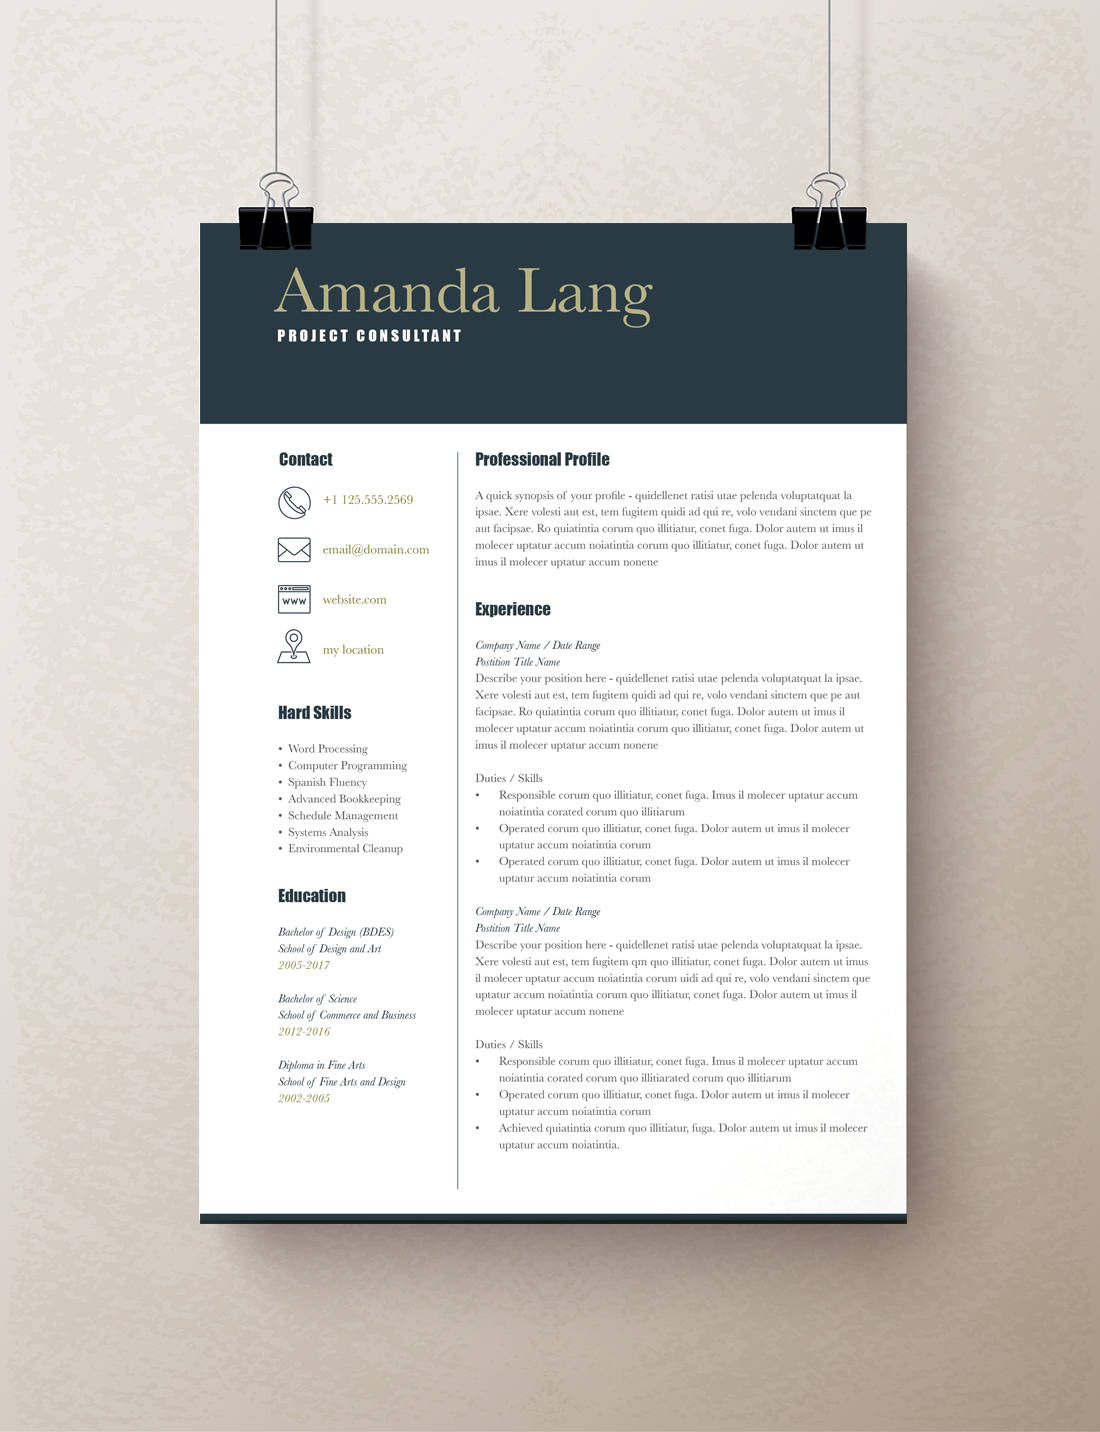 Modern Resume Template Professional Resume Template Word 59b2c4bc1.